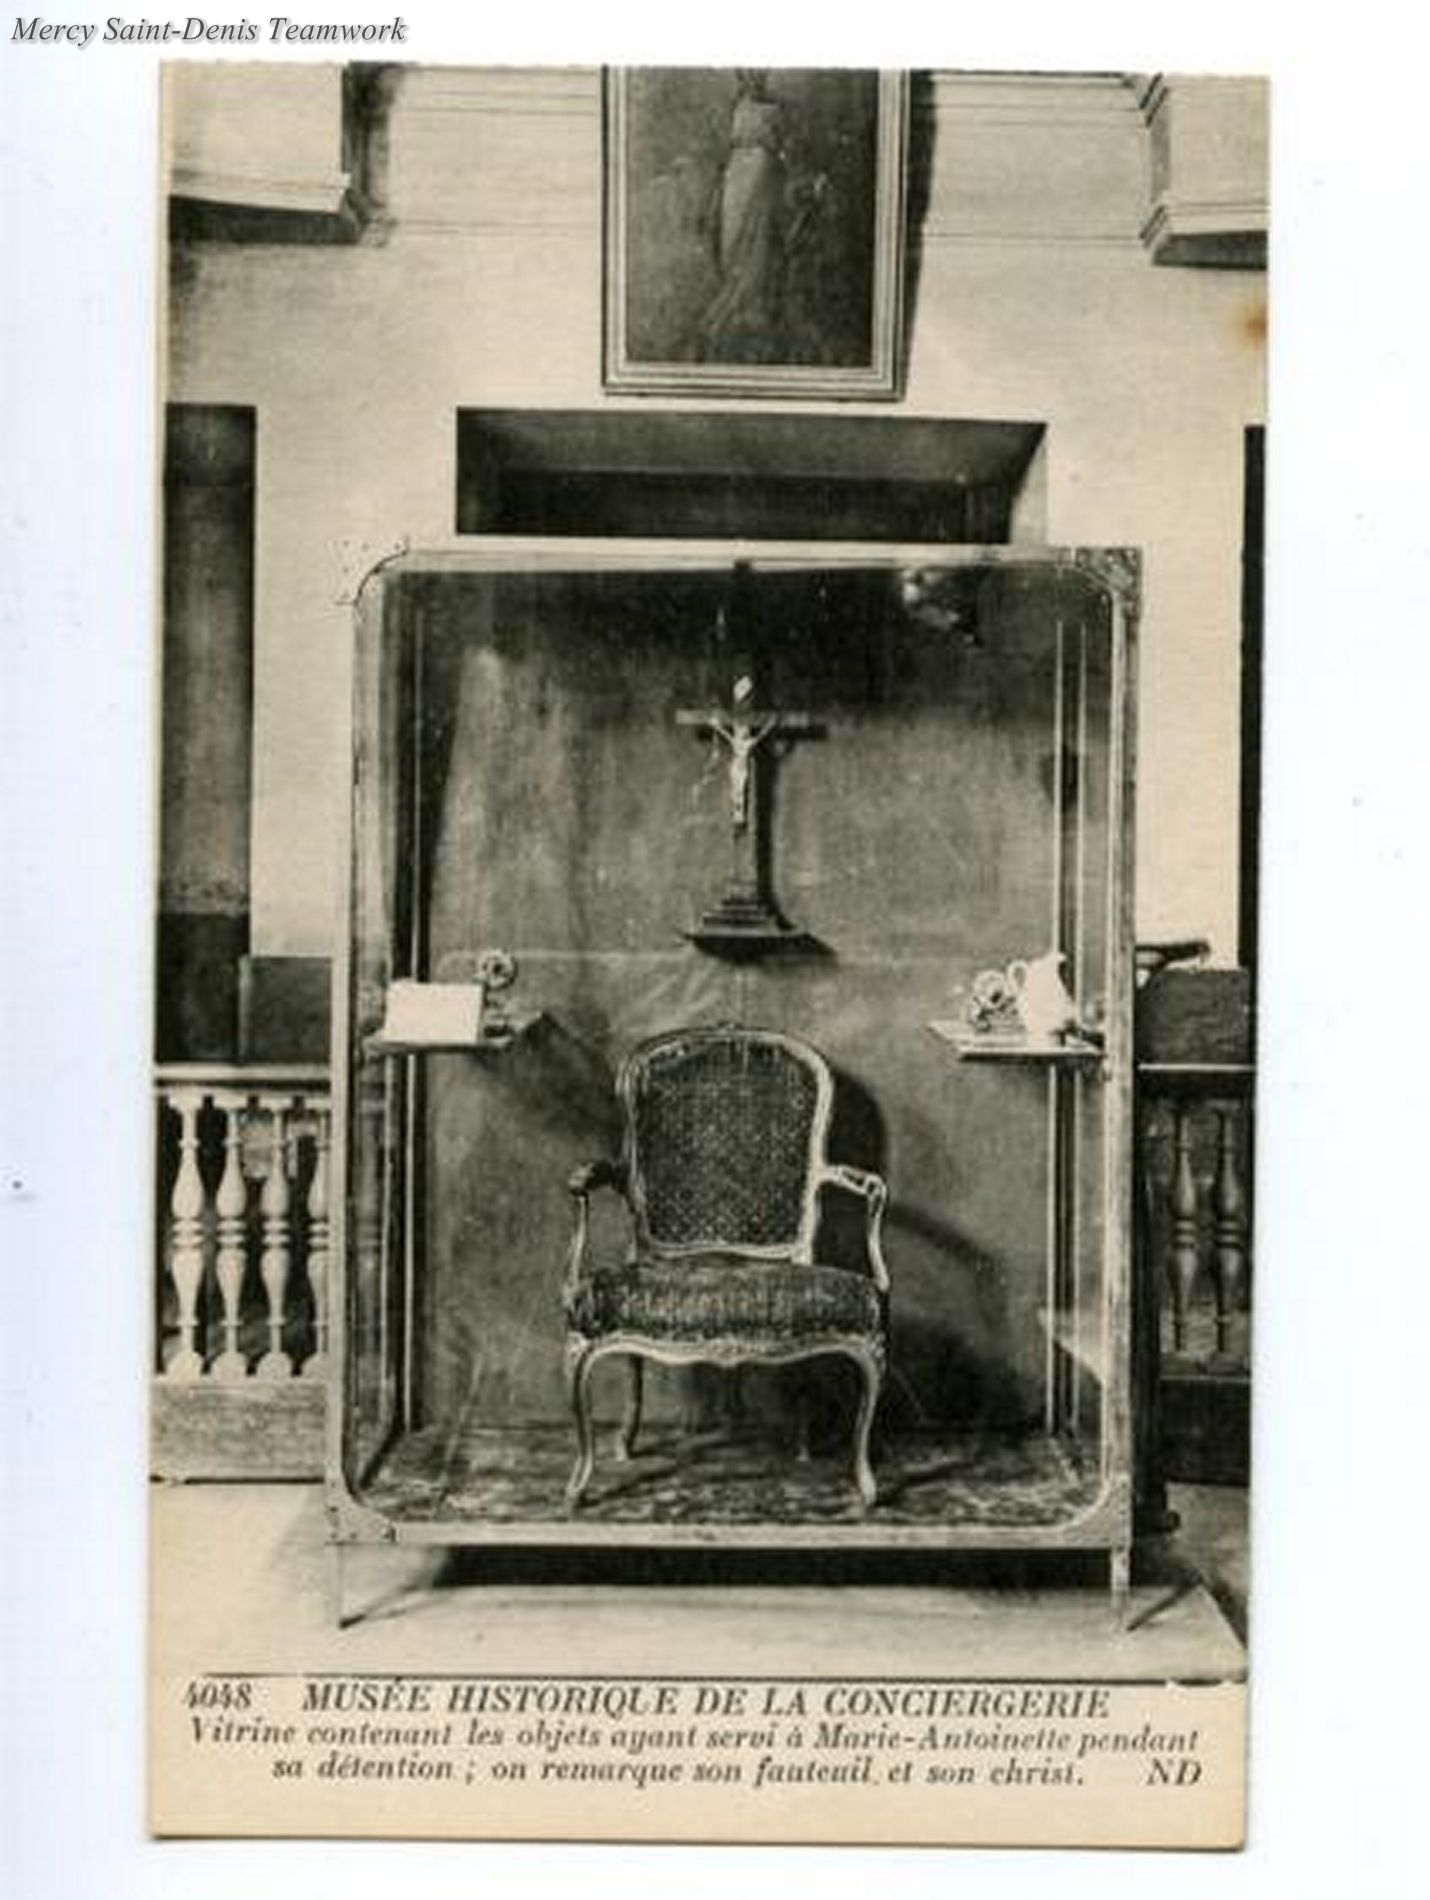 Vintage Photo Of A Few Relics Of Marie Antoinette From The Conciergerie Prison Marie Antoinette Marie Antionette French History